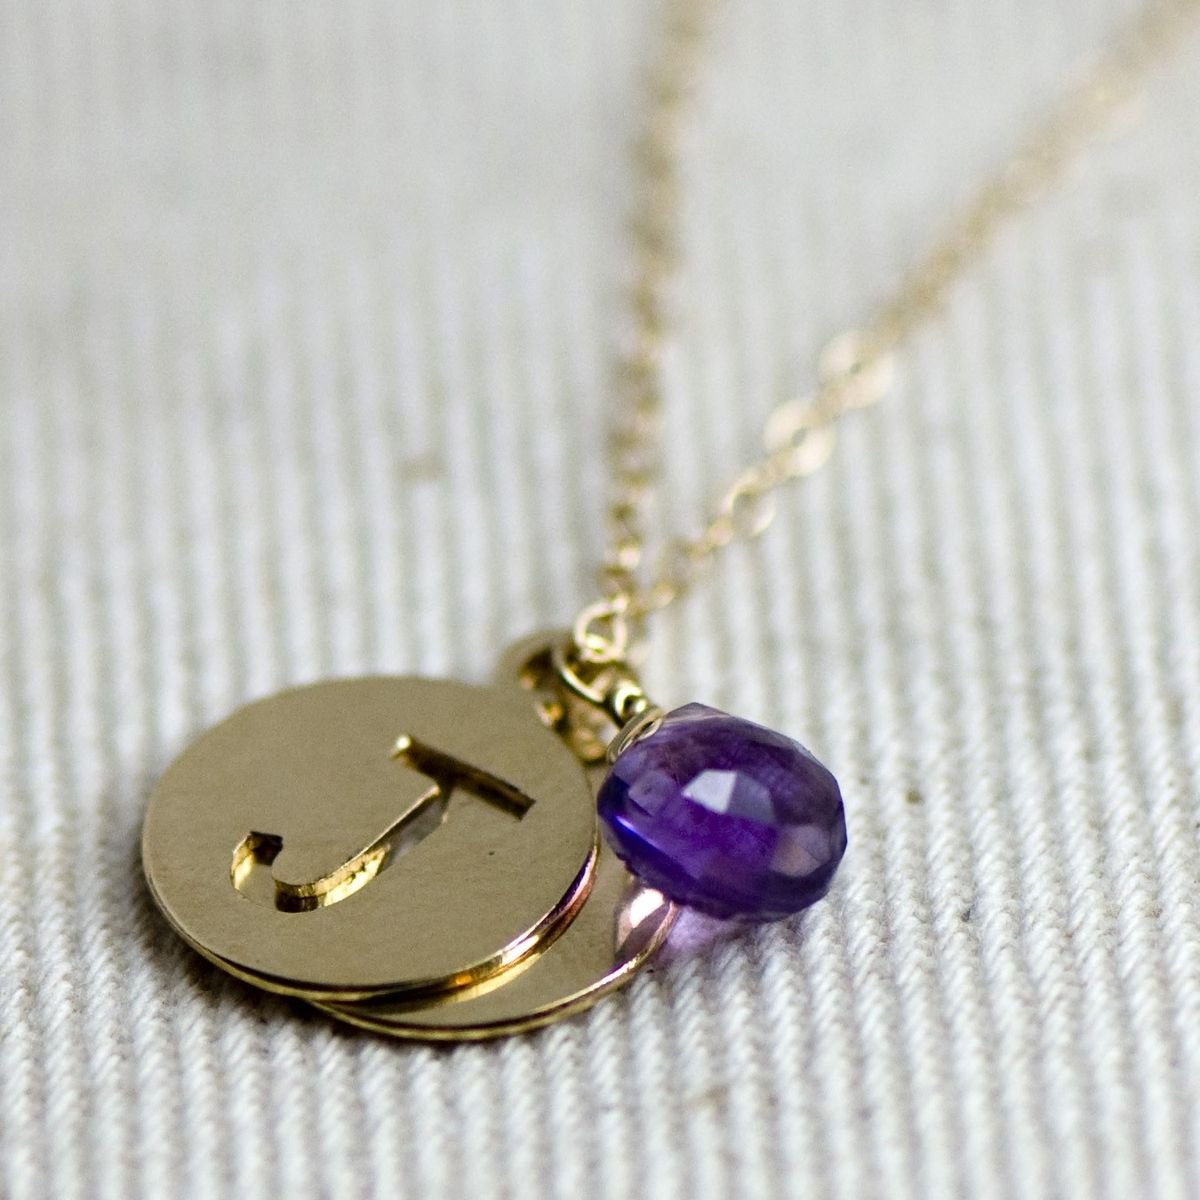 necklace egck jewellery fullxfull gold listing il filled amethyst stone chain au zoom raw